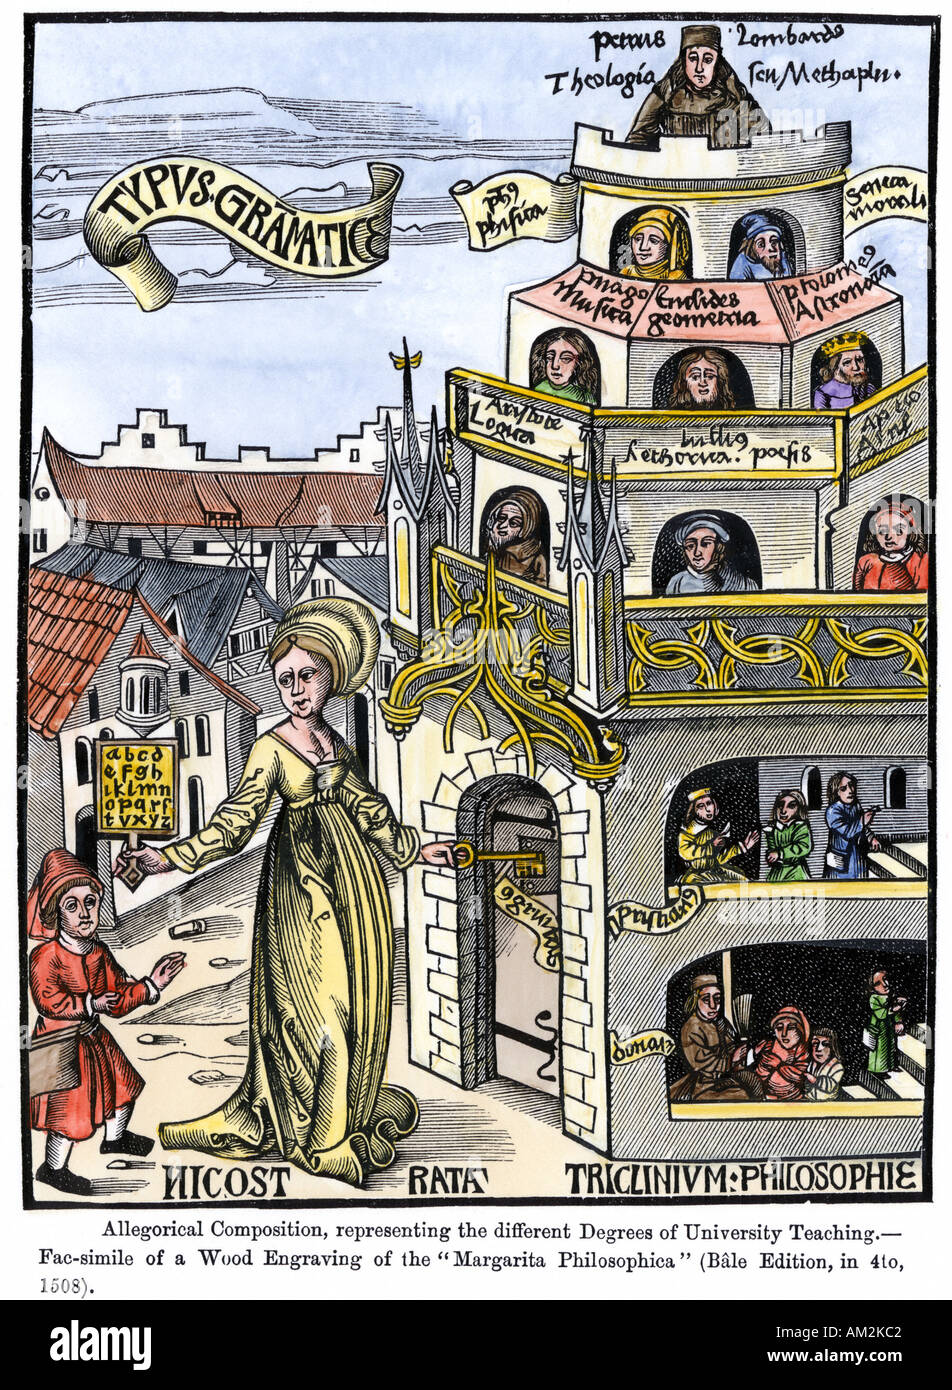 Different degrees of medieval university teaching topped by theology 1508. Hand-colored woodcut - Stock Image